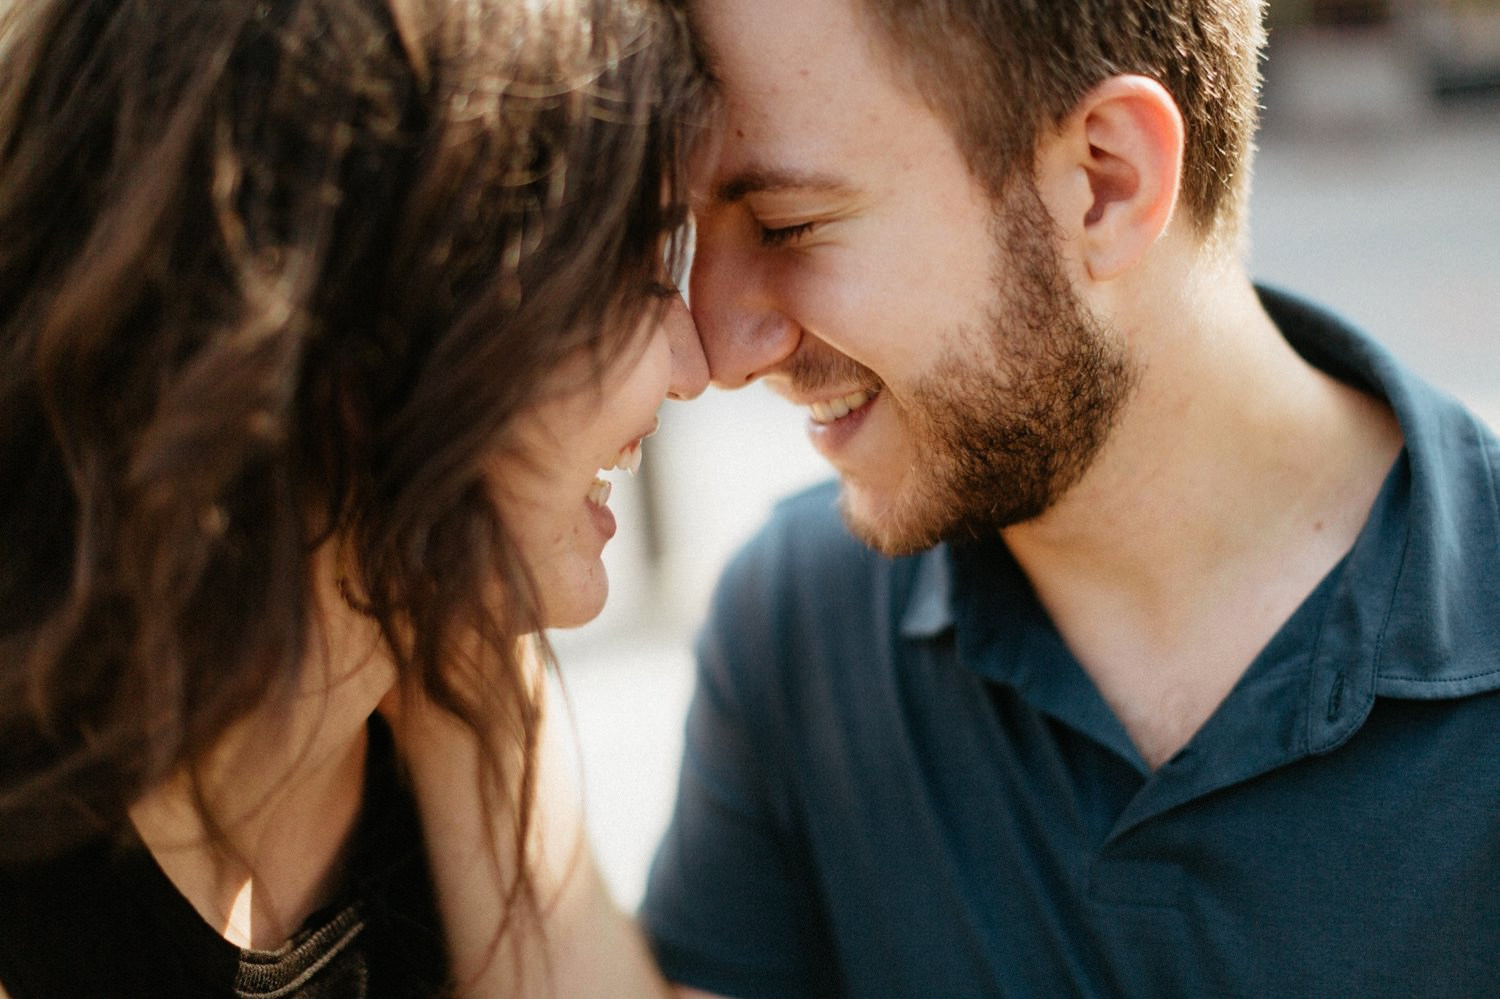 downtown-indianapolis-engagement-session-rooftop-indianapolis-engagement-photographer-kelly-marcelo-photography004.JPG